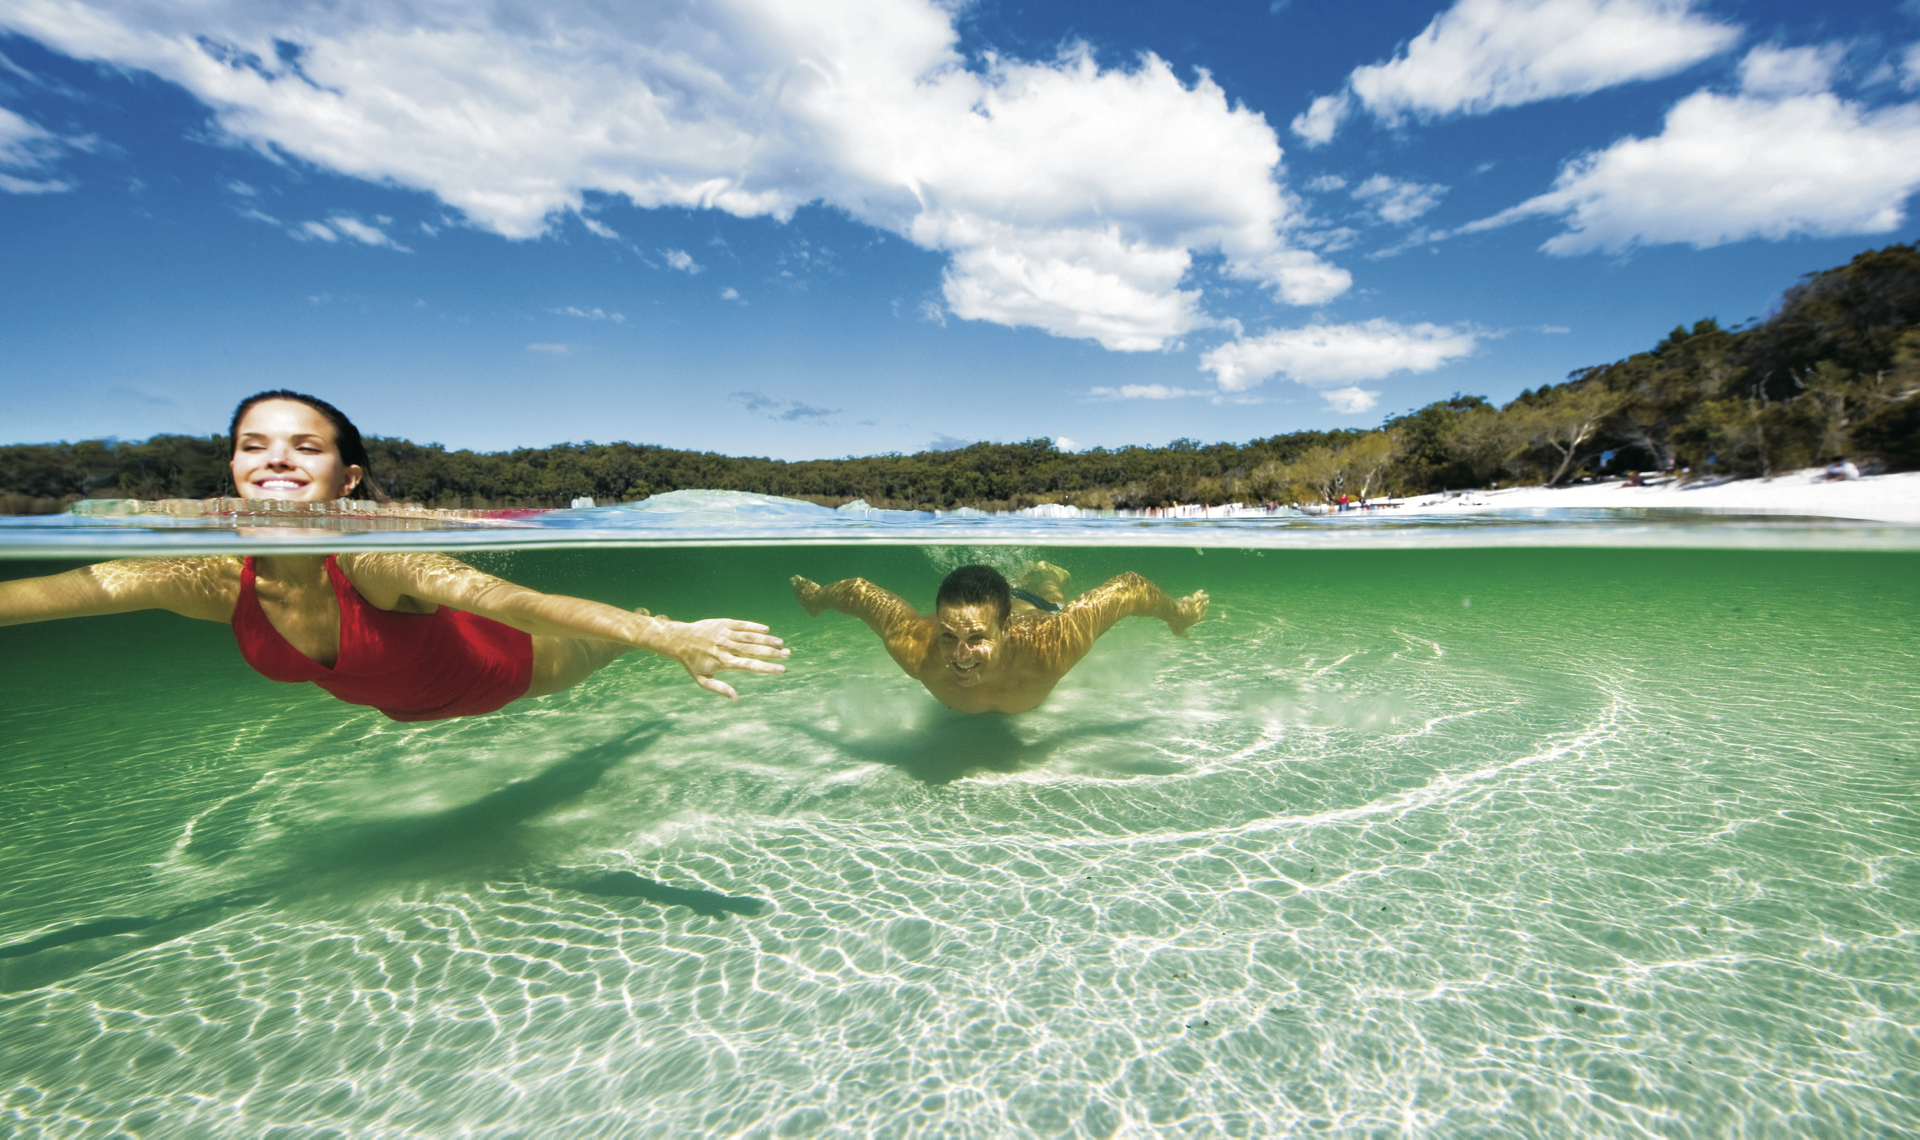 Erfrischung im Lake McKenzie ©Darren Jew / Tourism Queensland